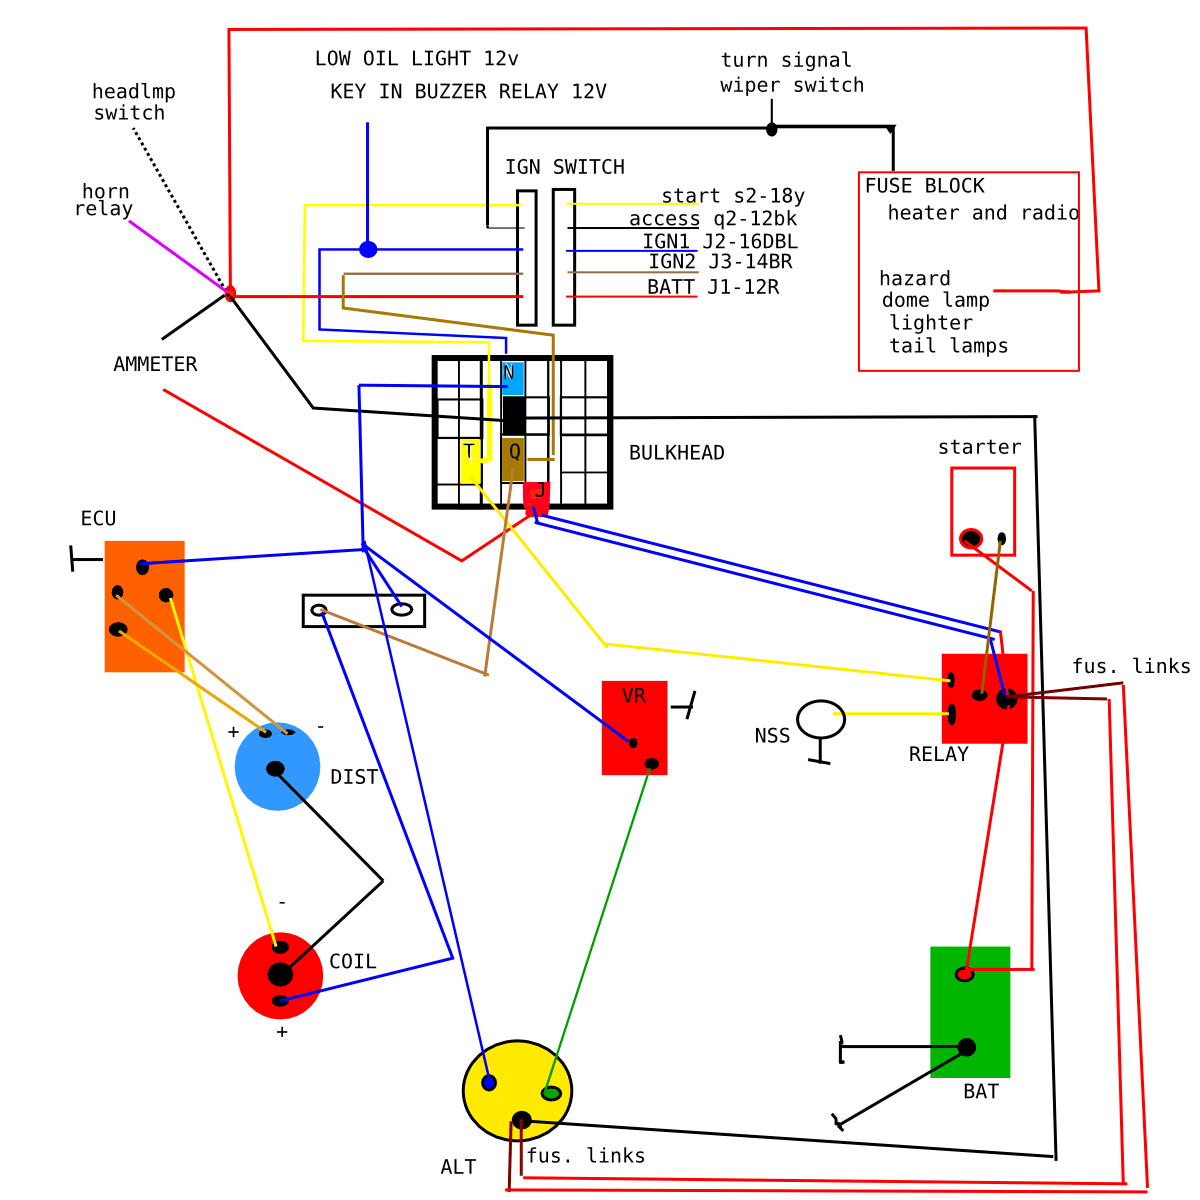 adding a relay for the ignition circuit